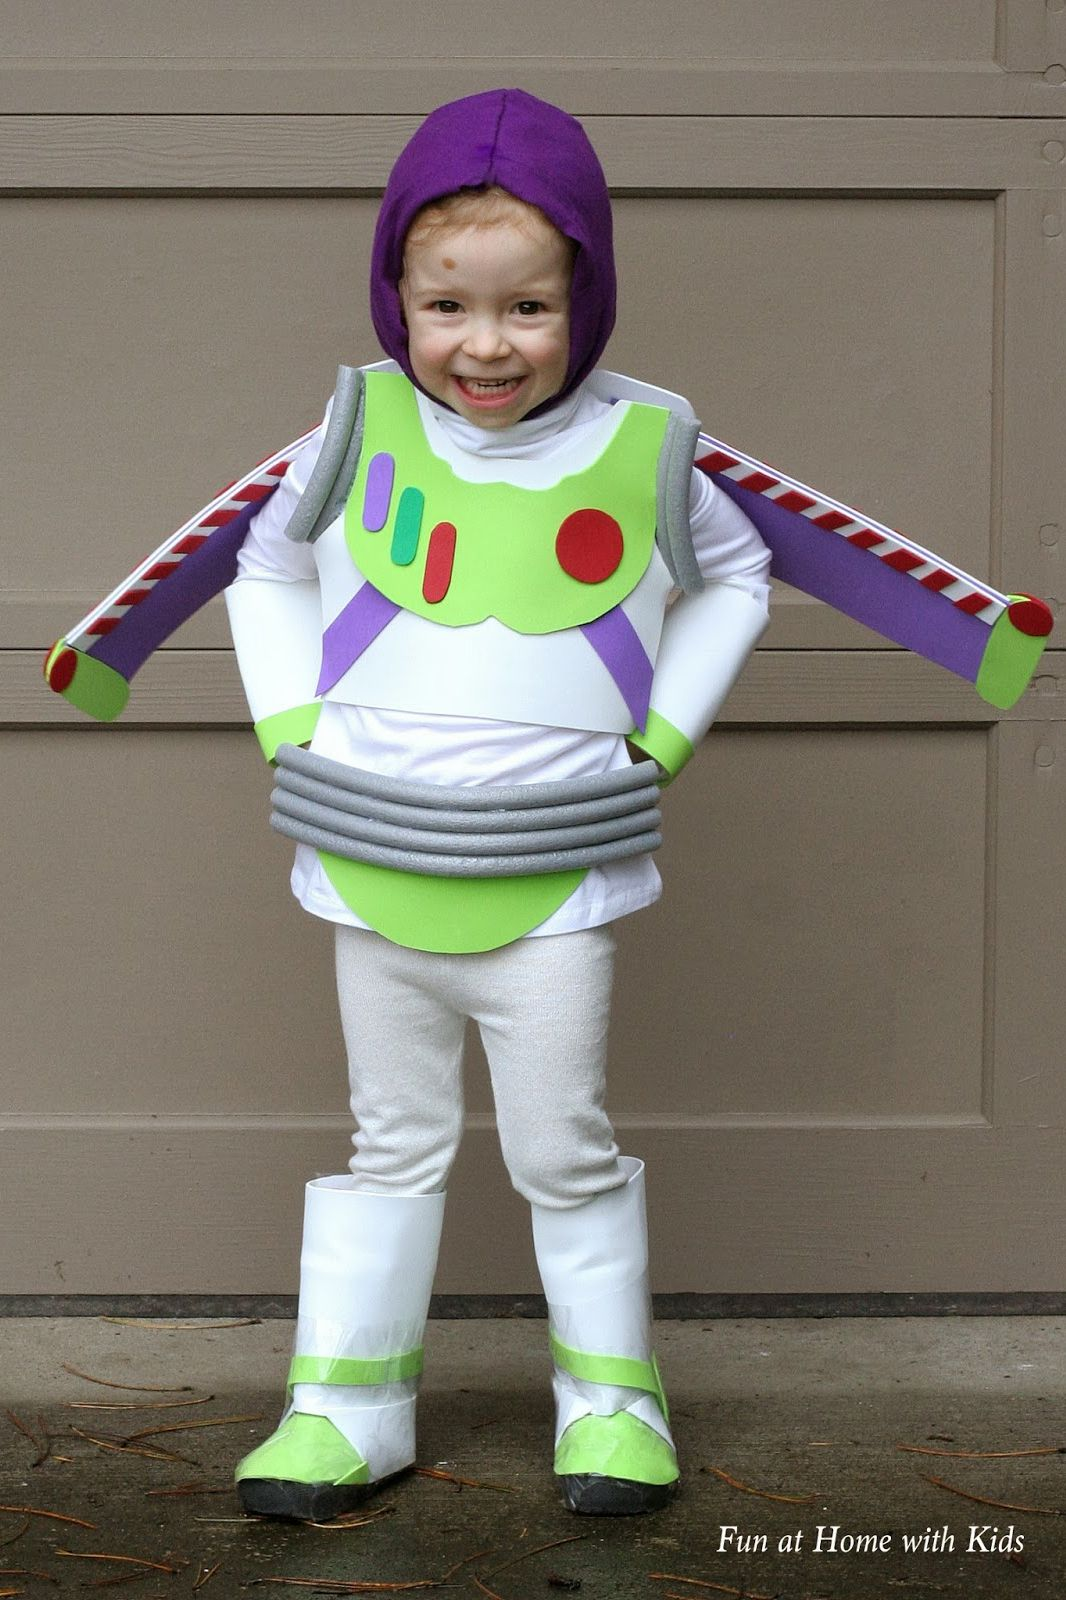 15 diy halloween costume ideas for kids - cheap homemade costumes